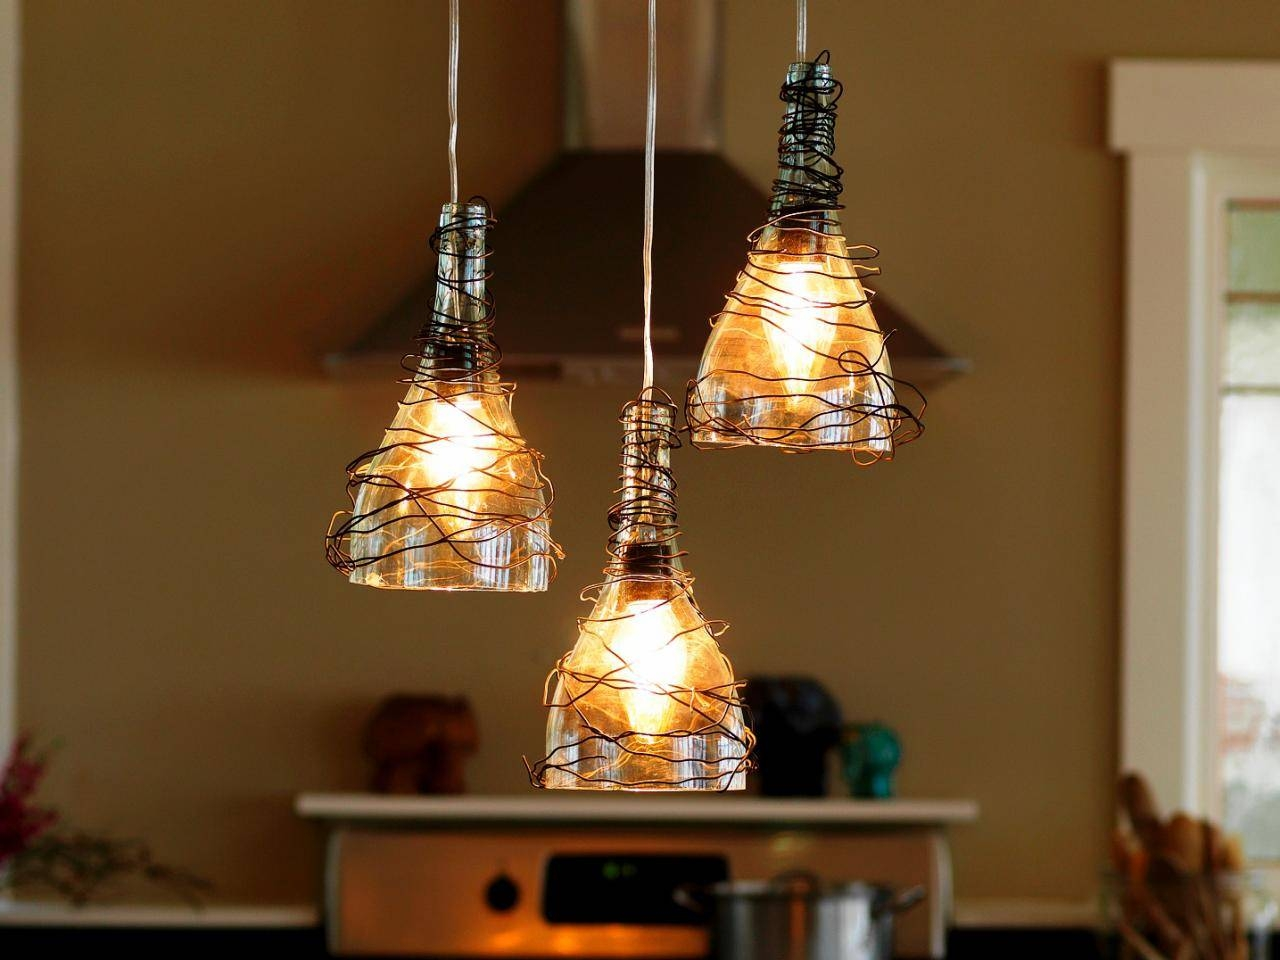 Upcycle Wine Bottle Into Pendant Light Fixtures | How-Tos | Diy with Diy Multi Pendant Lights (Image 15 of 15)